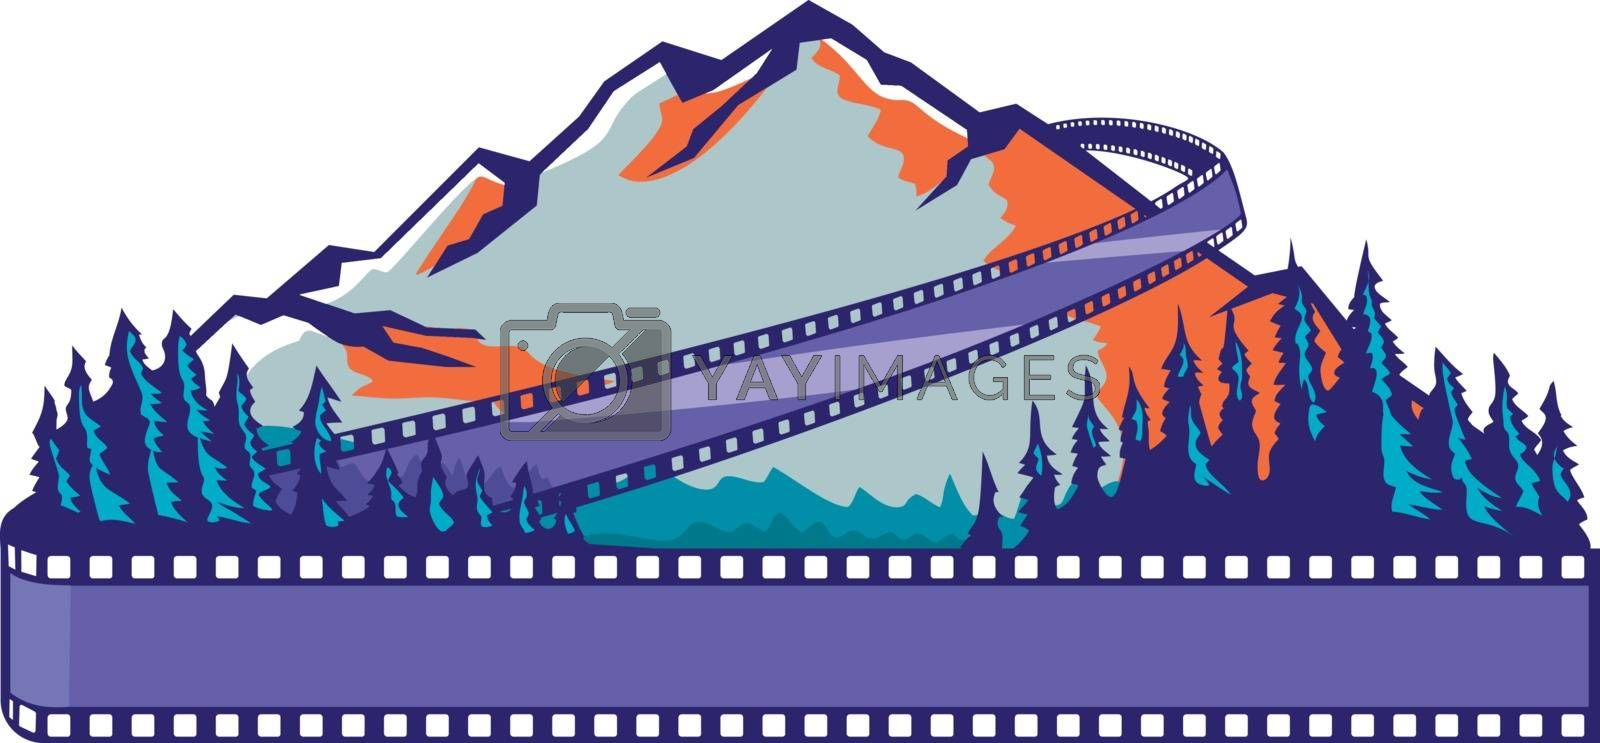 Retro WPA or Works Progress Administration art style illustration of a mountain and trees in foreground with flowing film strip or ,filmstrip reel coming from back to front on isolated background.